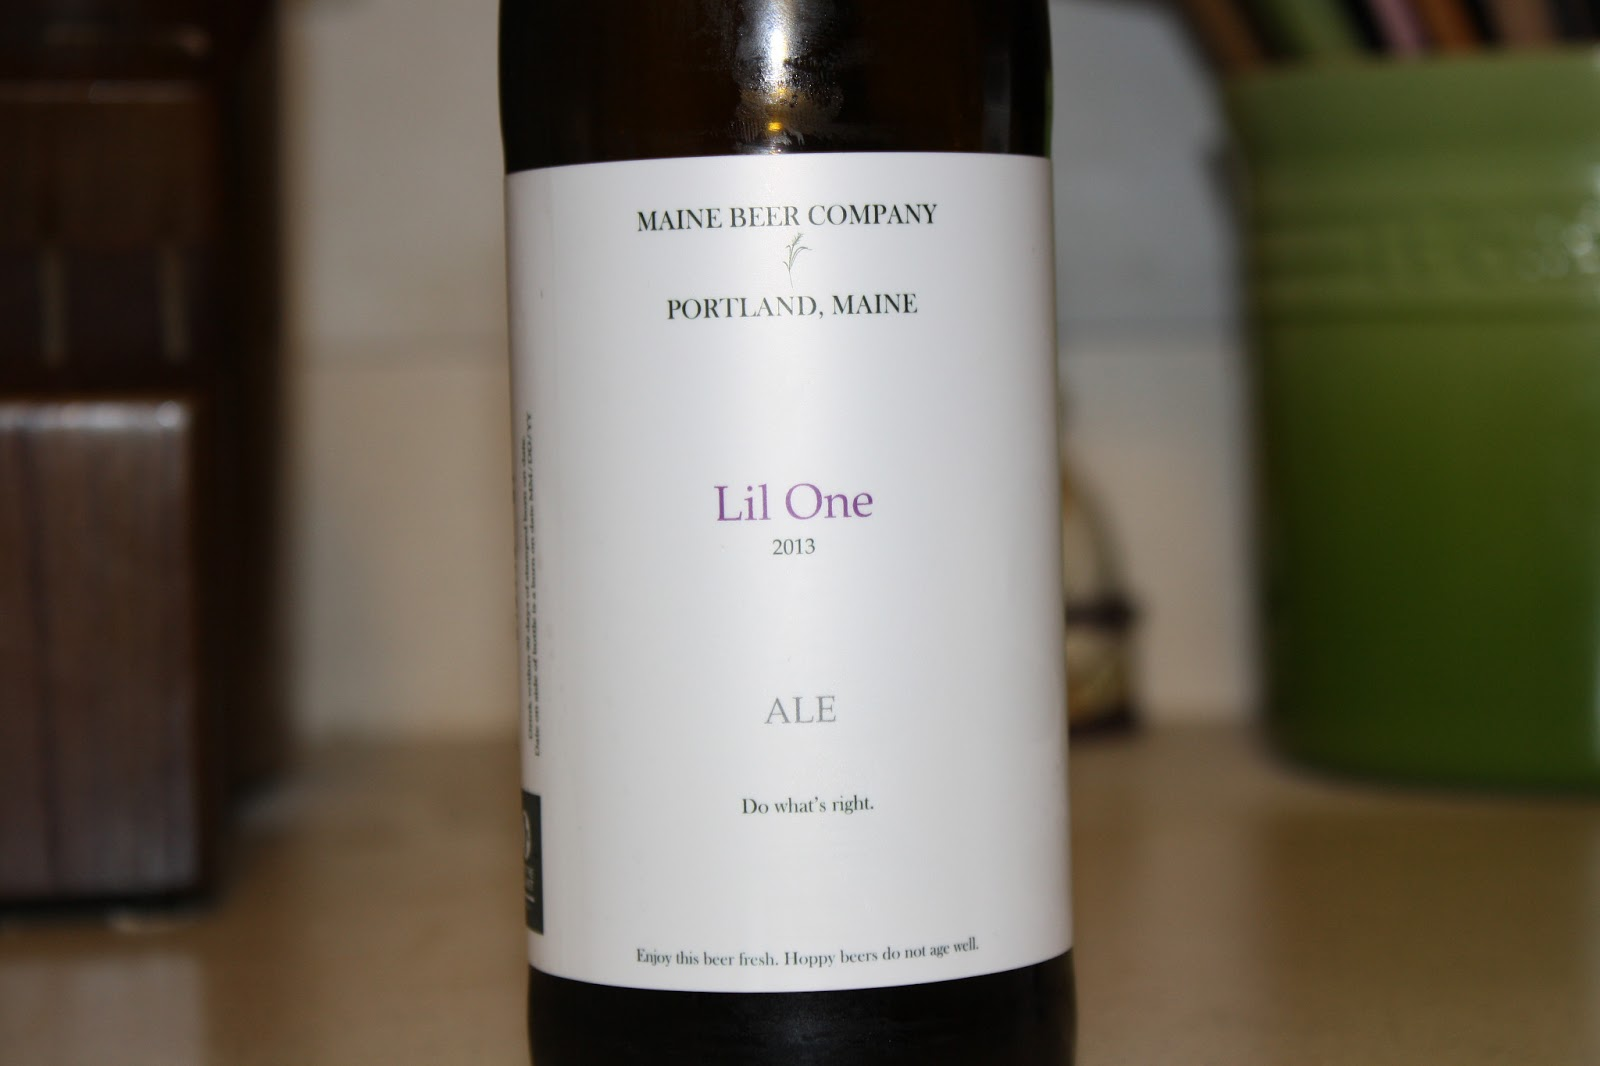 Maine Beer Company Lil One